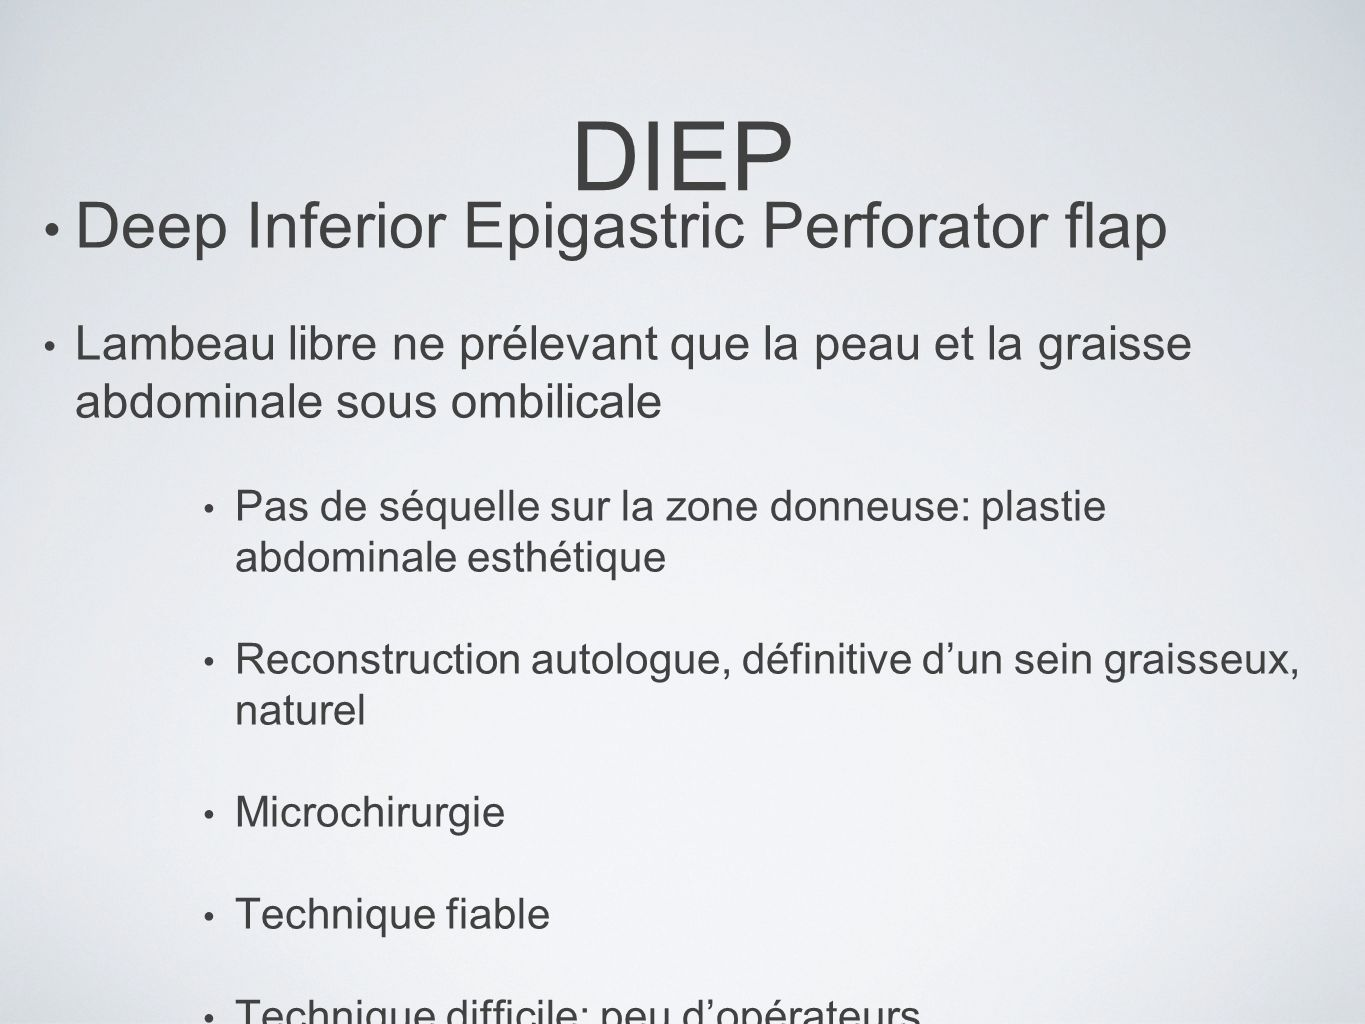 DIEP Deep Inferior Epigastric Perforator flap